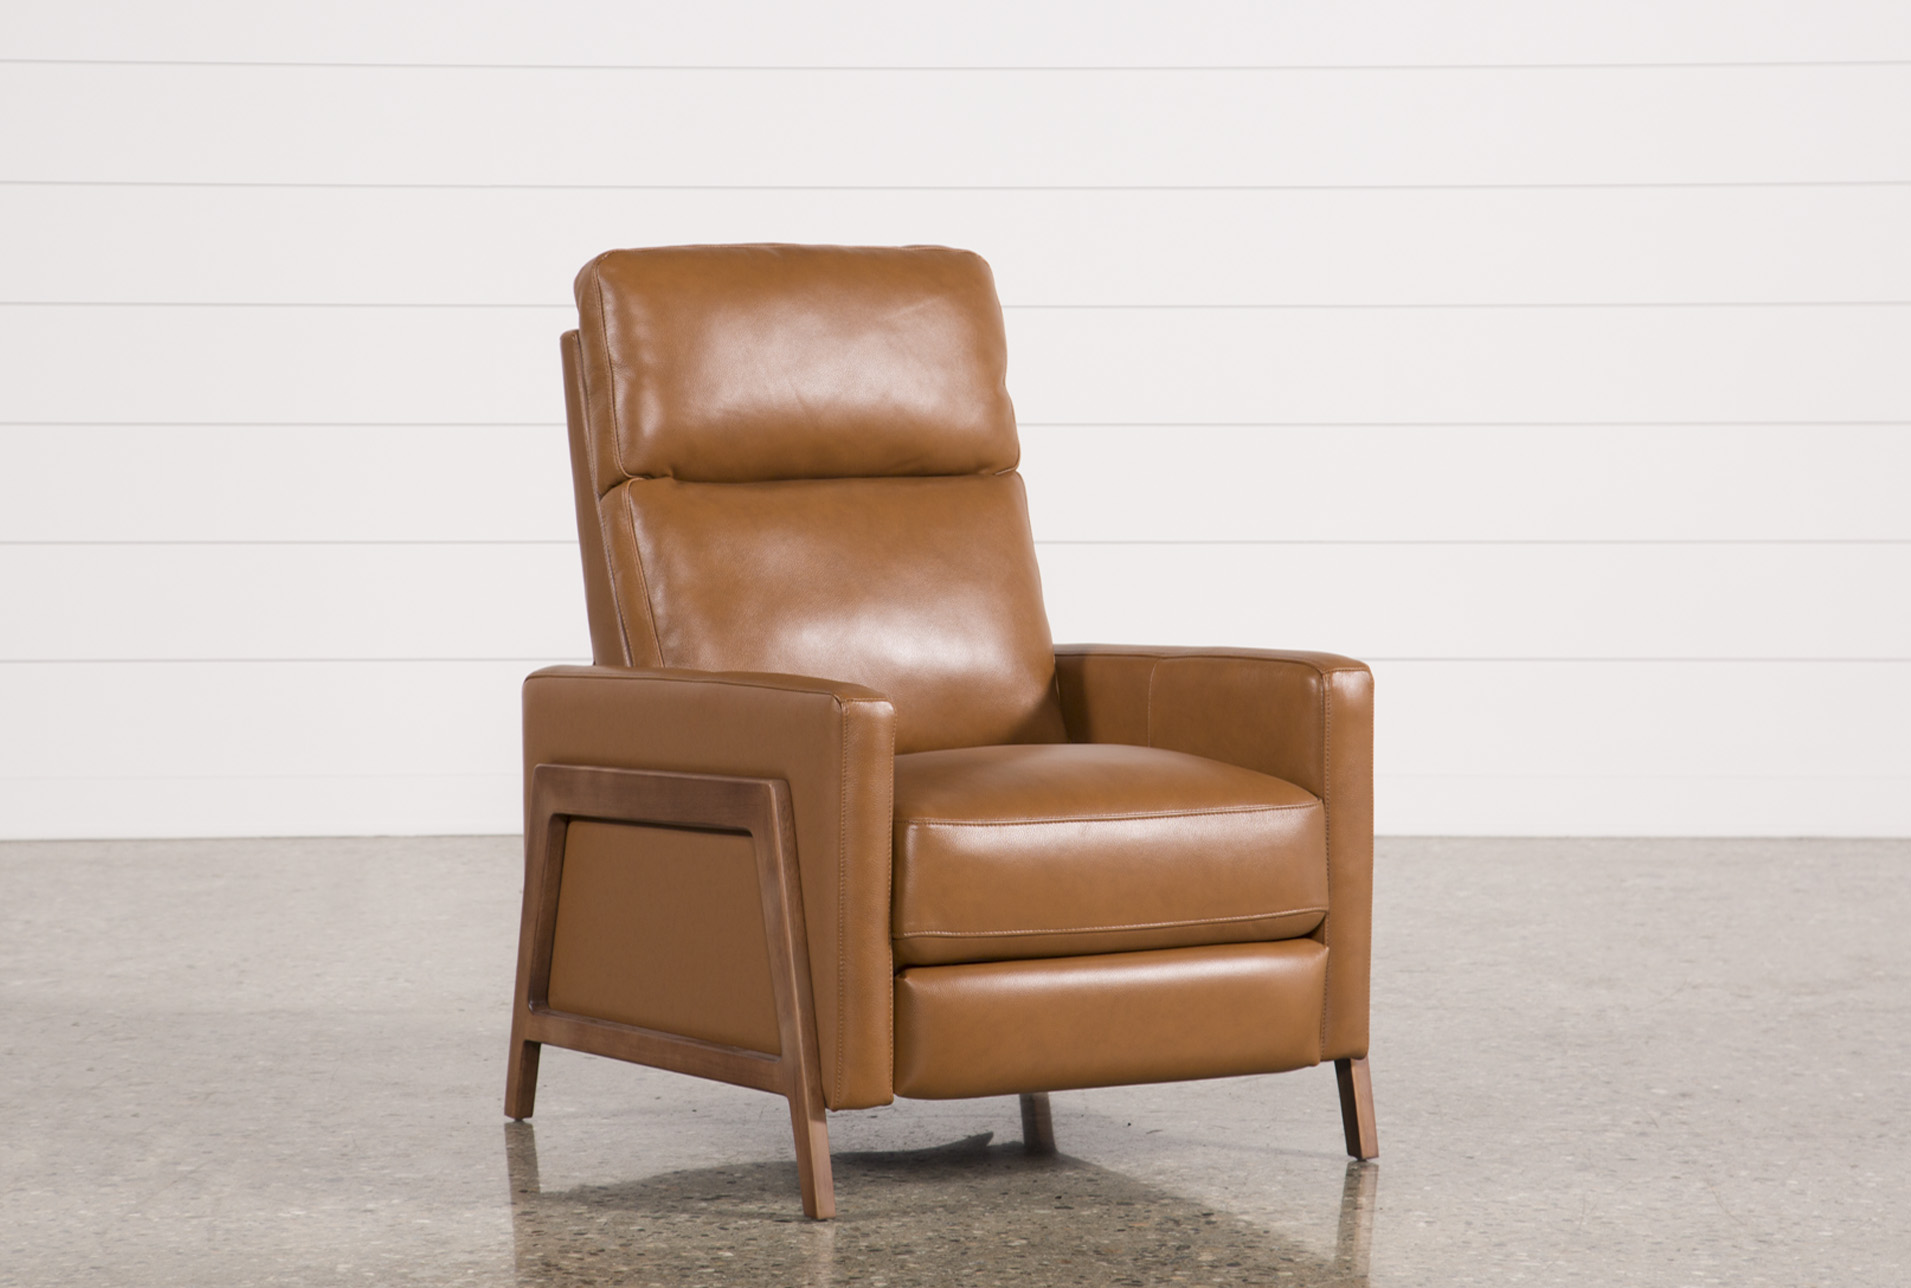 Contemporary / Modern Recliner Chairs for Your Home & Office